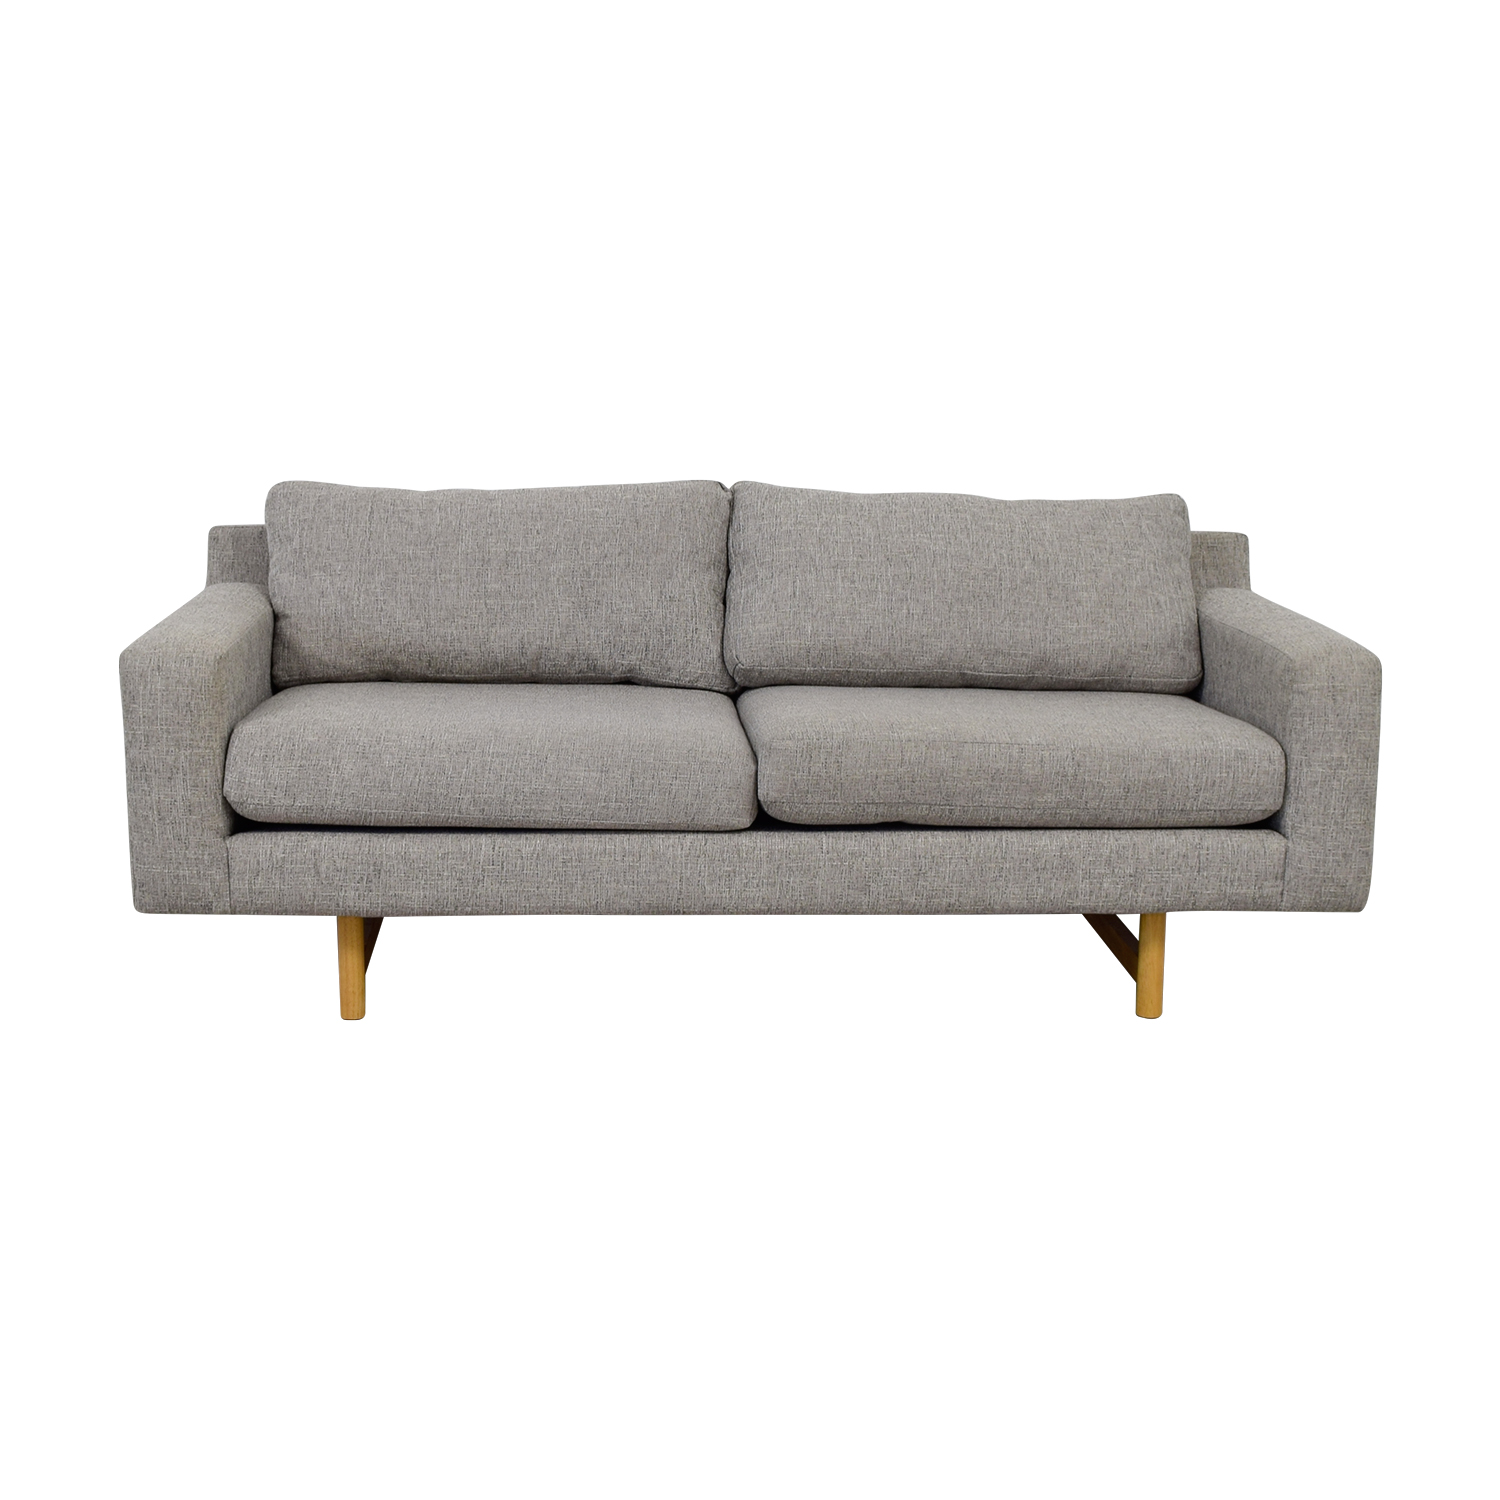 buy West Elm West Elm Eddy Sofa online